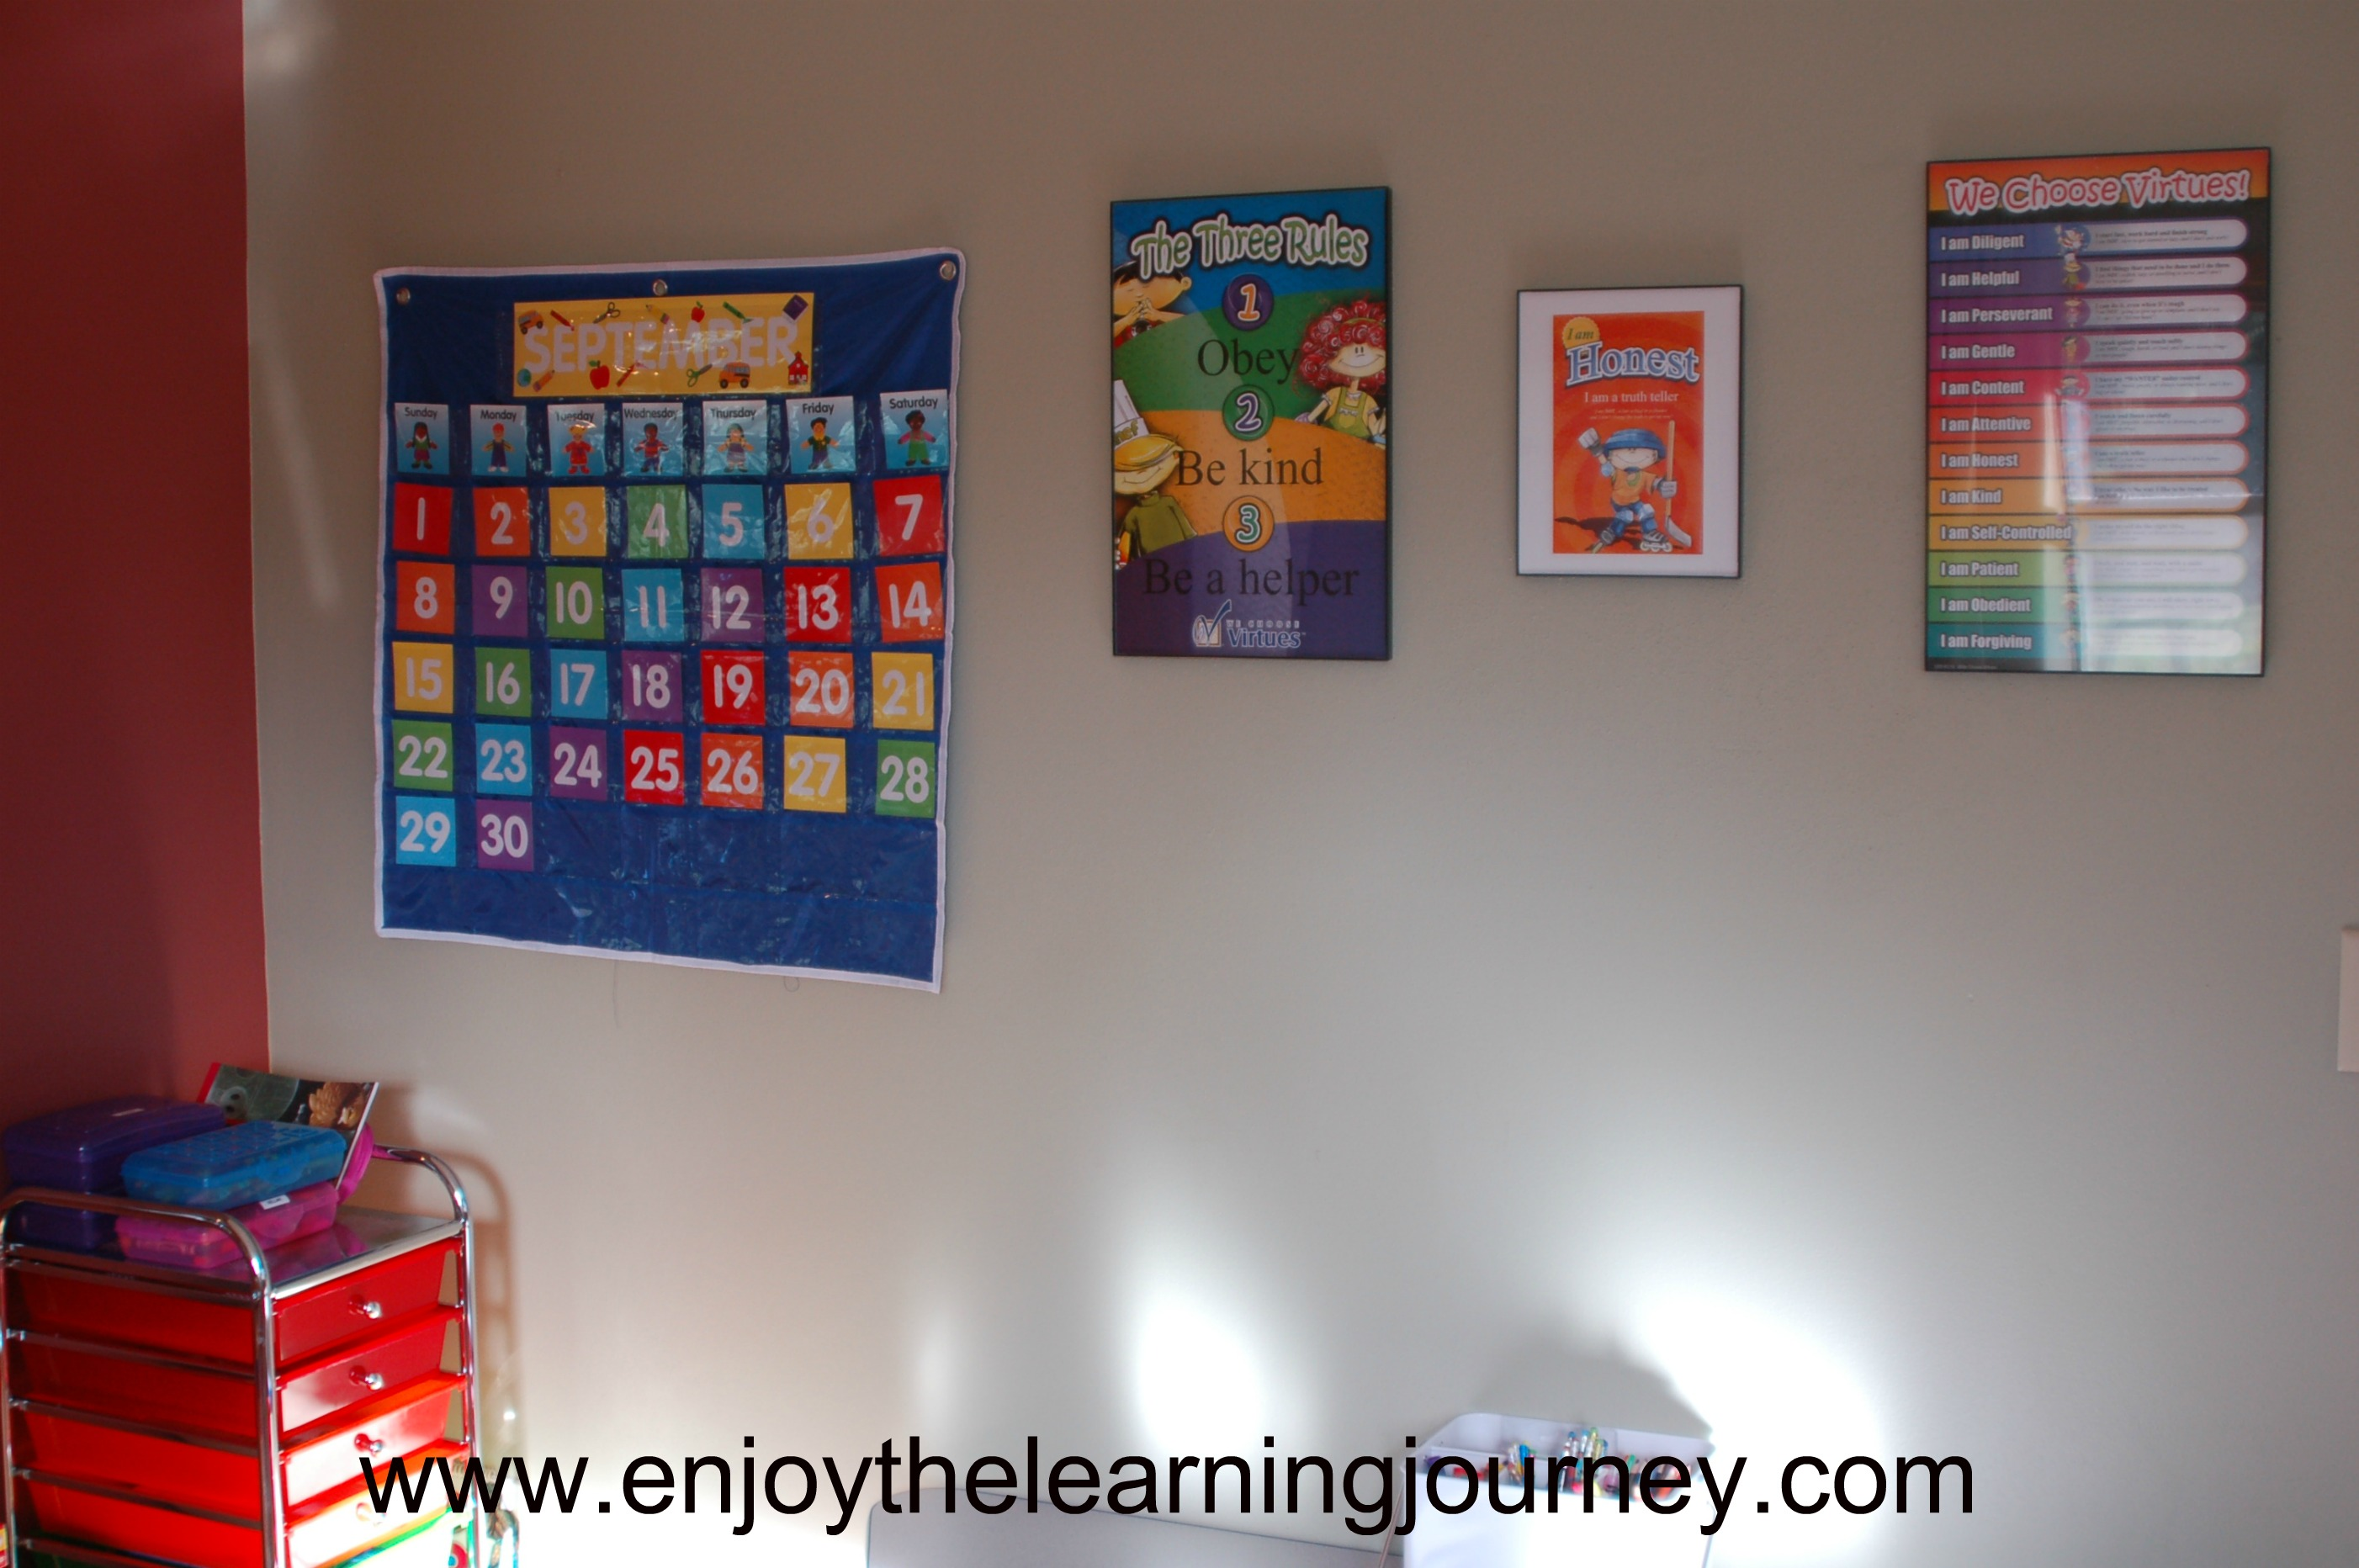 Our Homeschool Schoolroom 2013-2014